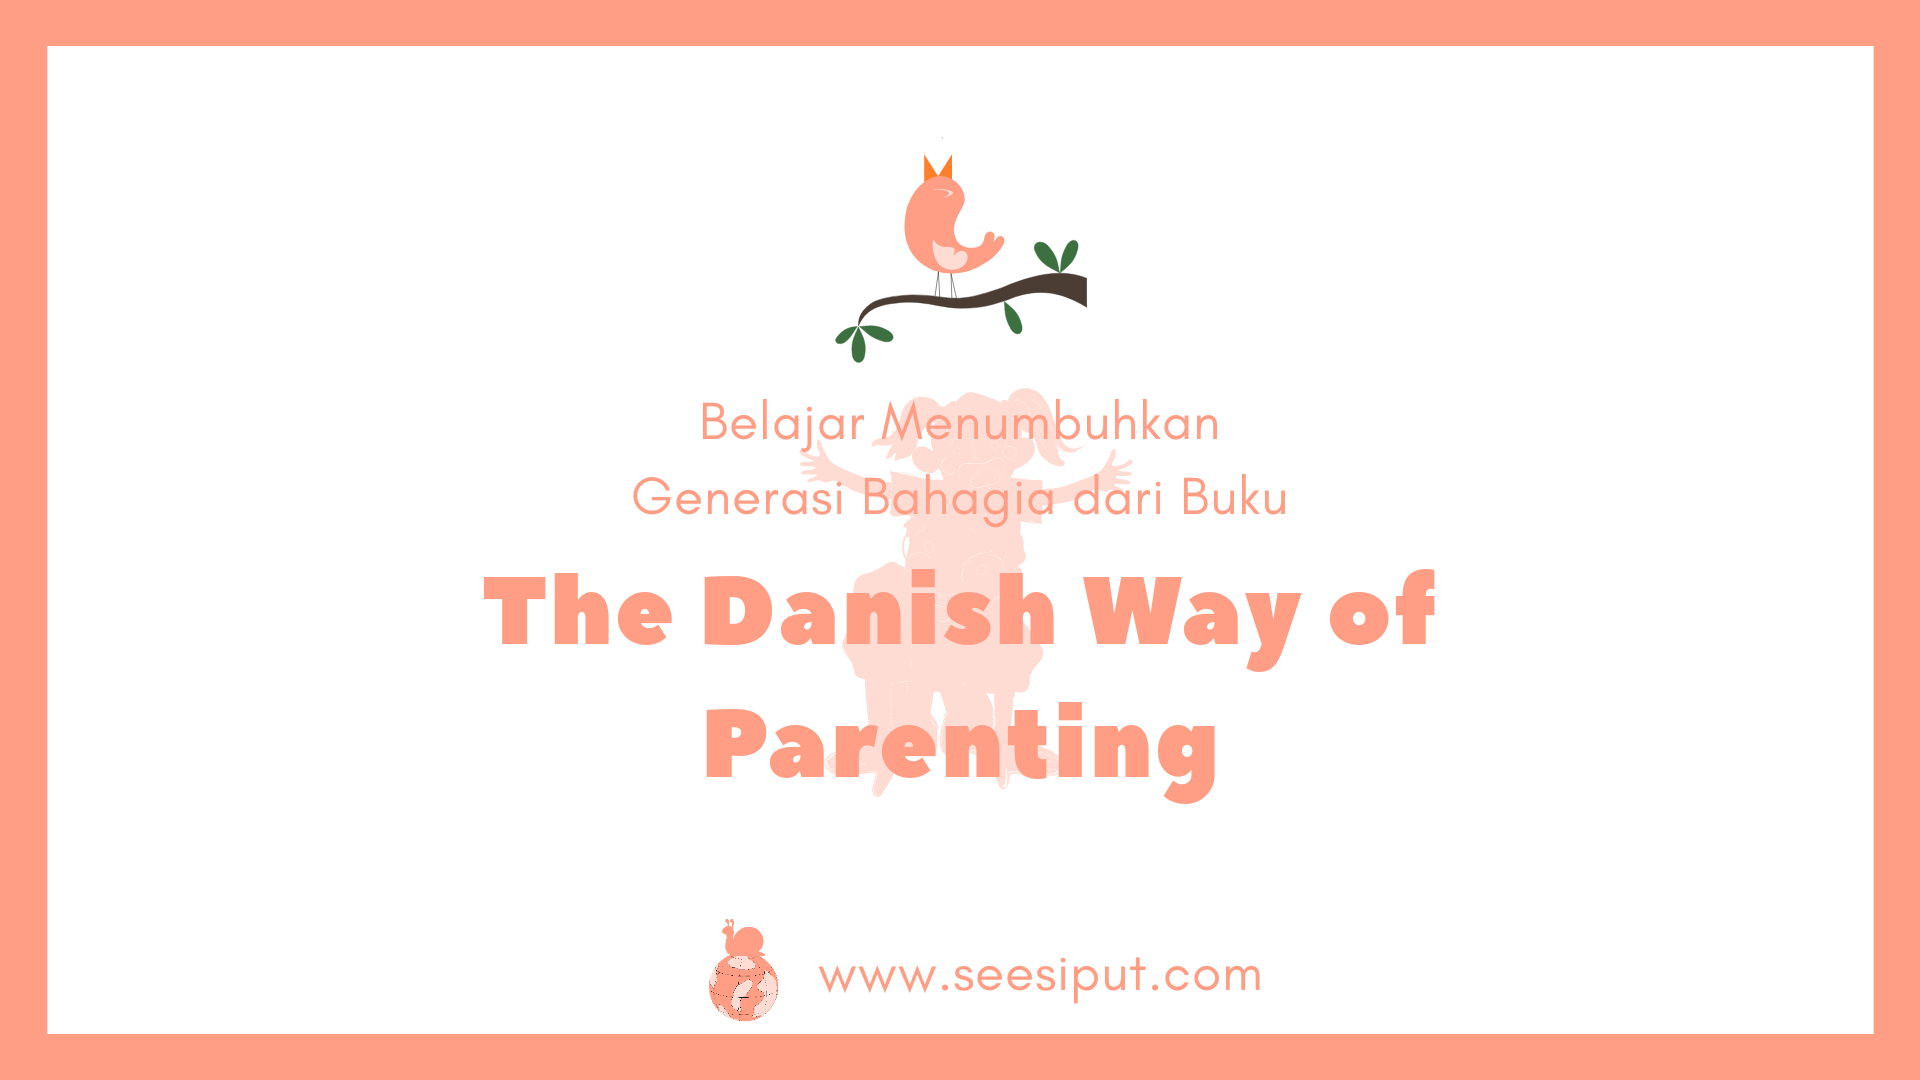 Belajar dari The Danish Way of Parenting